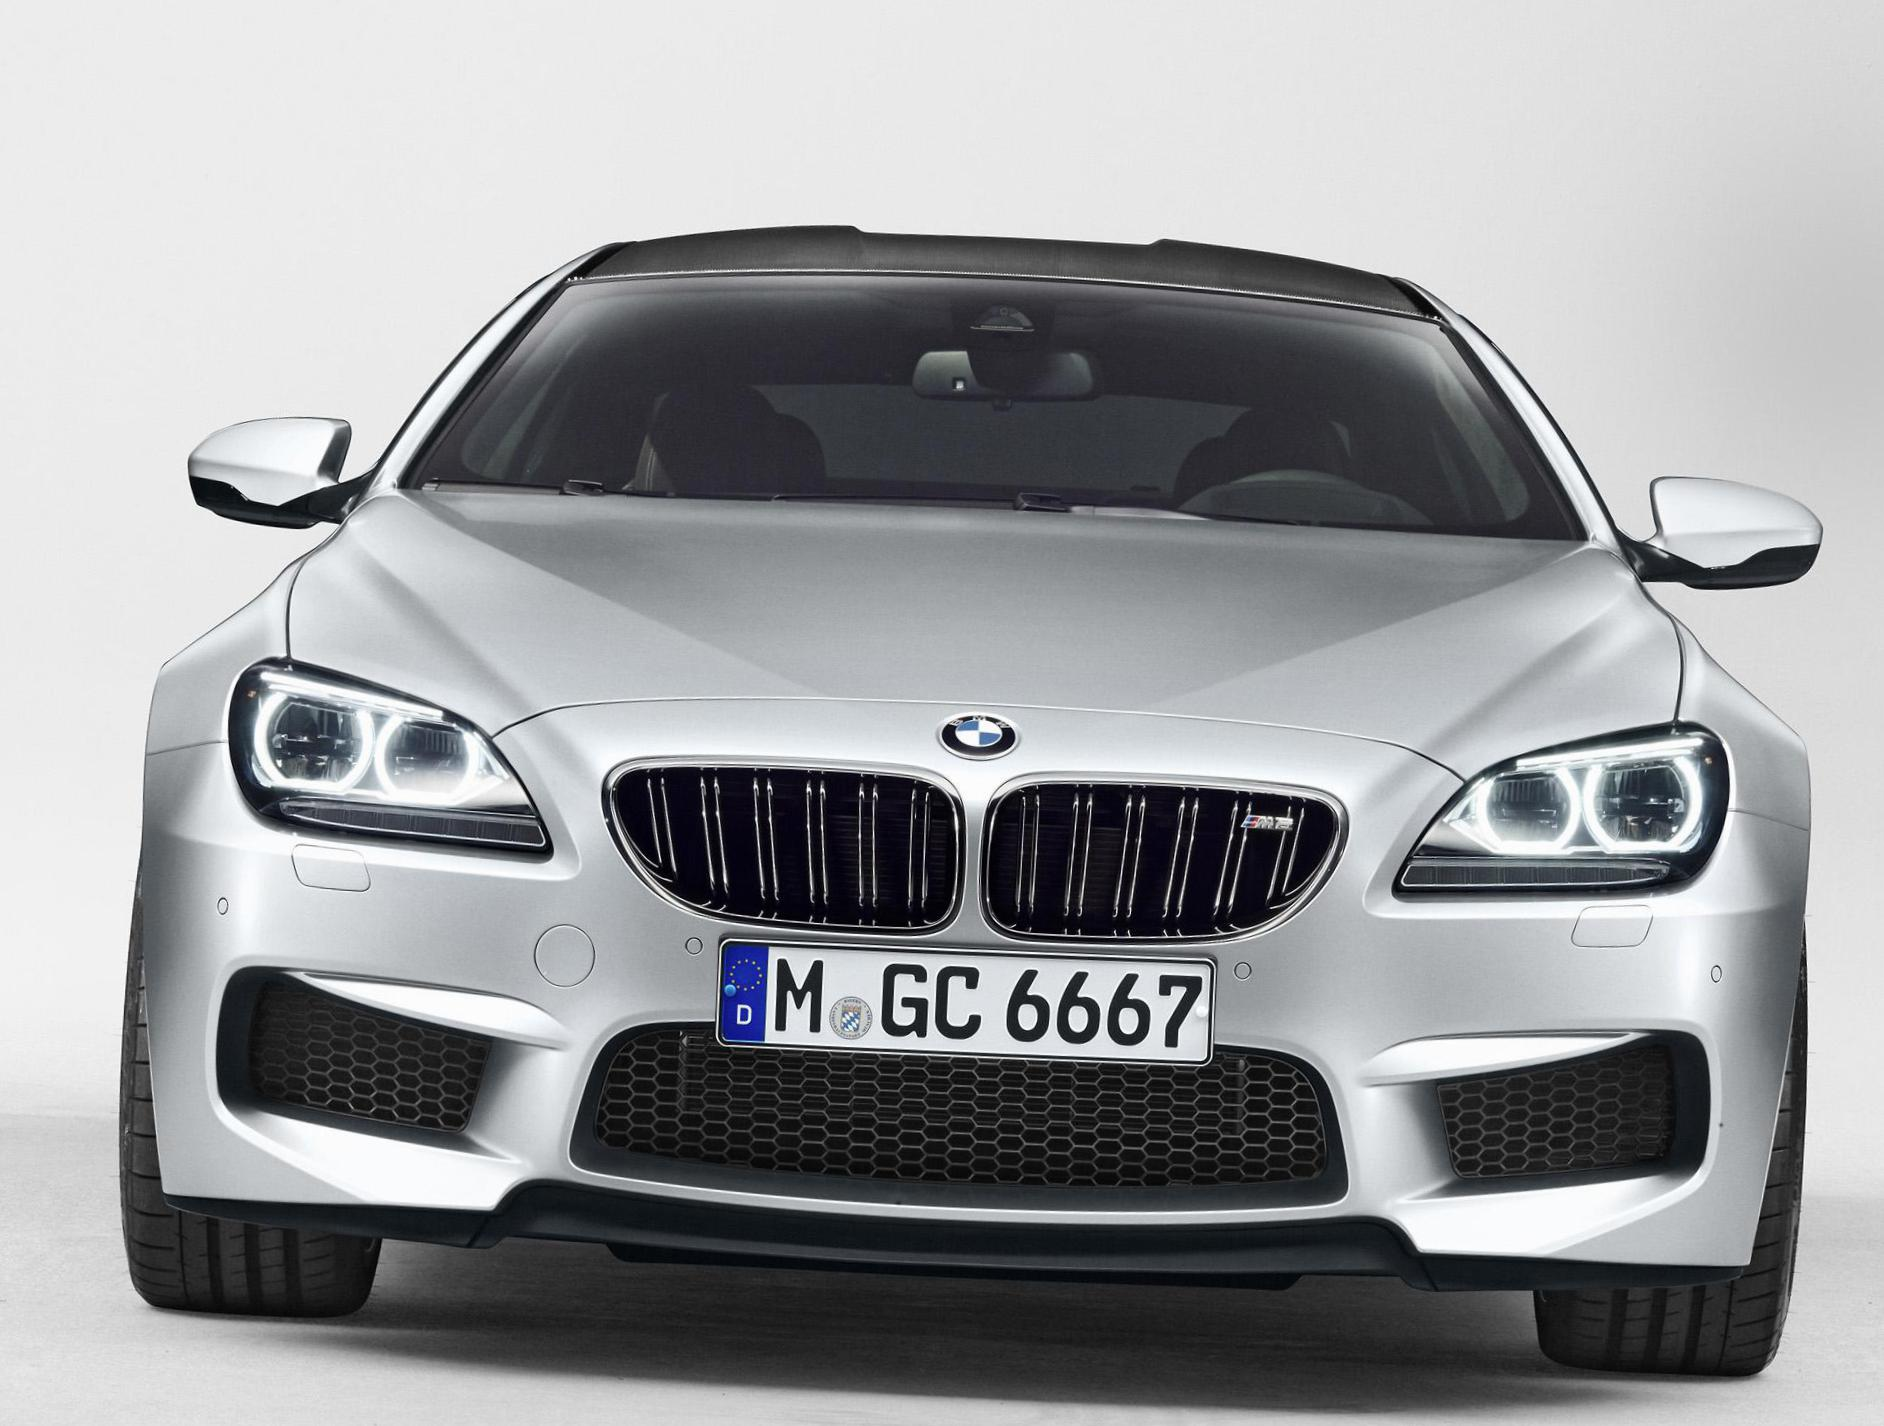 M6 Gran Coupe (F06) BMW tuning hatchback